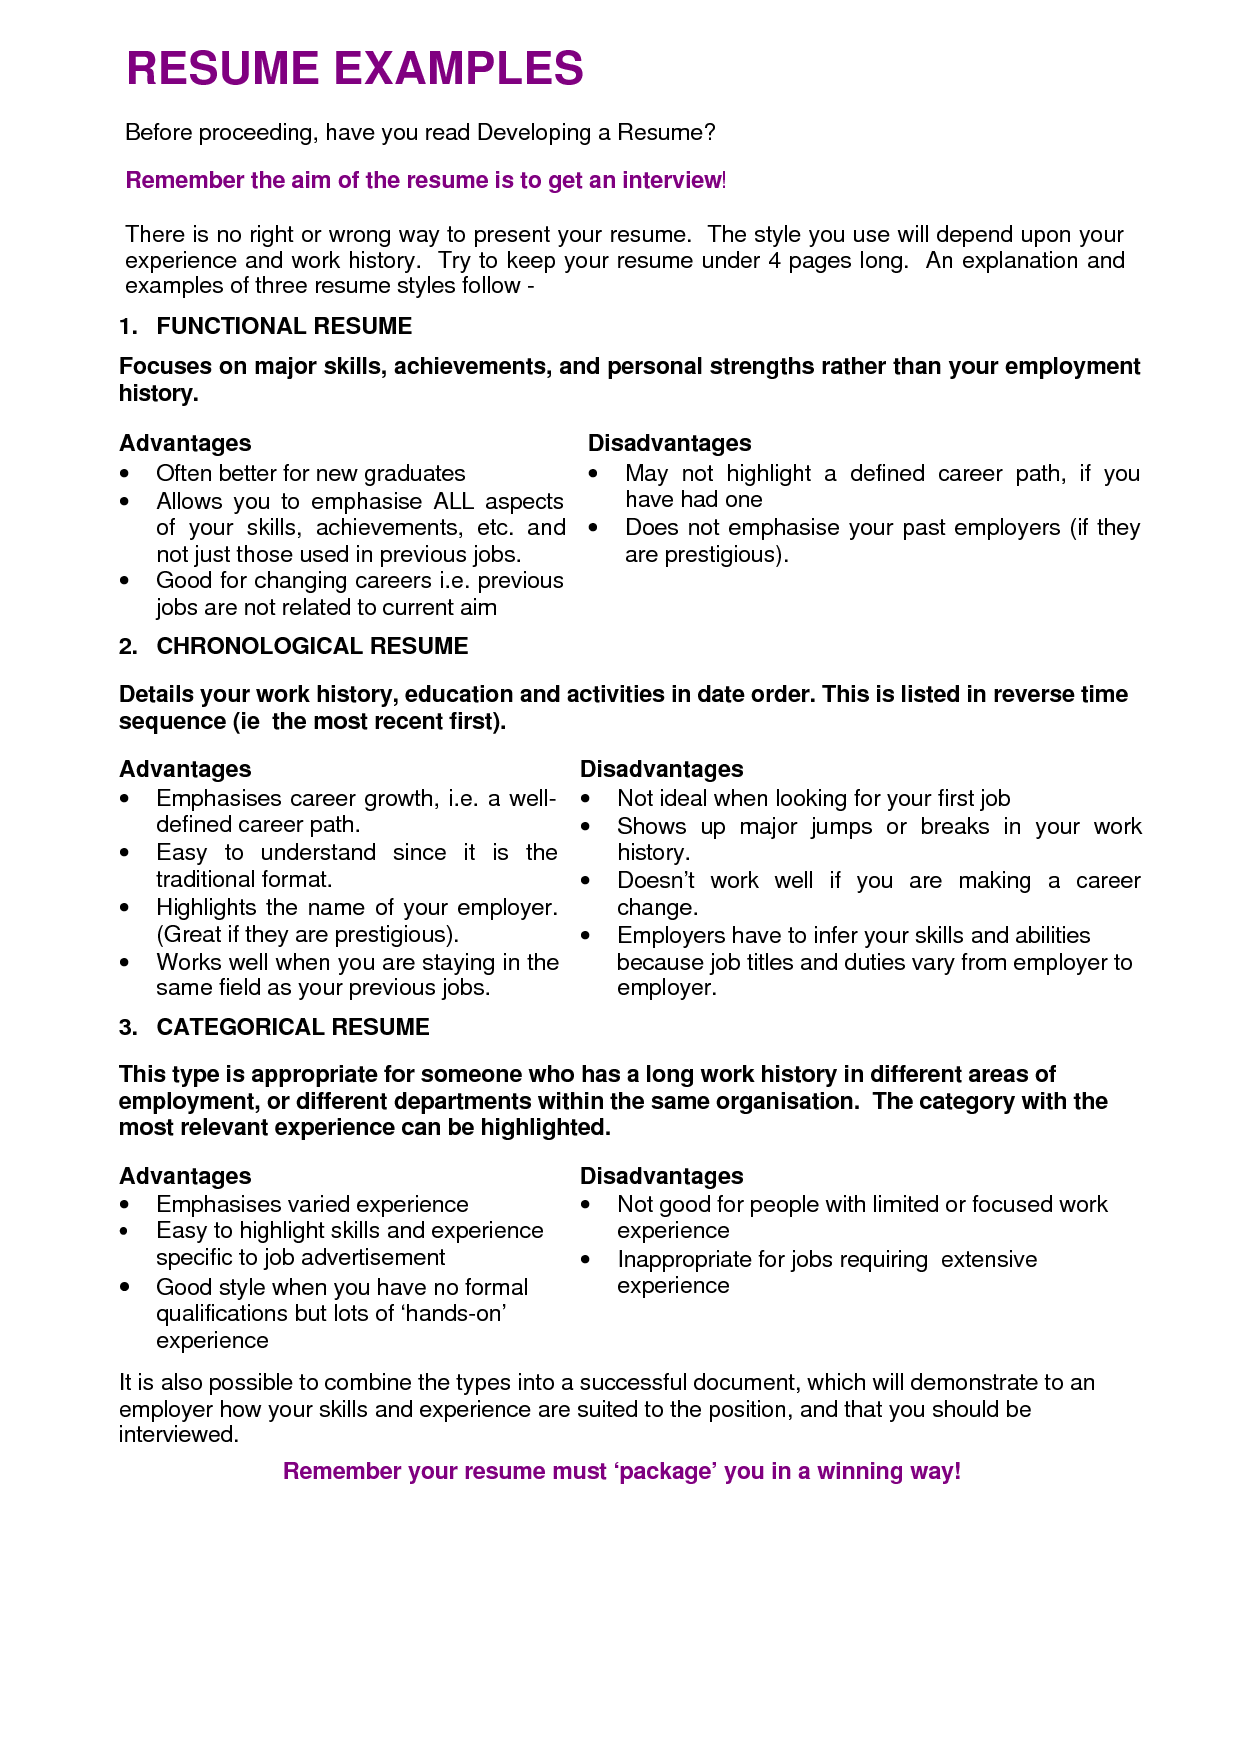 Resume objective examples best templateresume objective examples resume objective examples best templateresume objective examples application letter sample spiritdancerdesigns Image collections